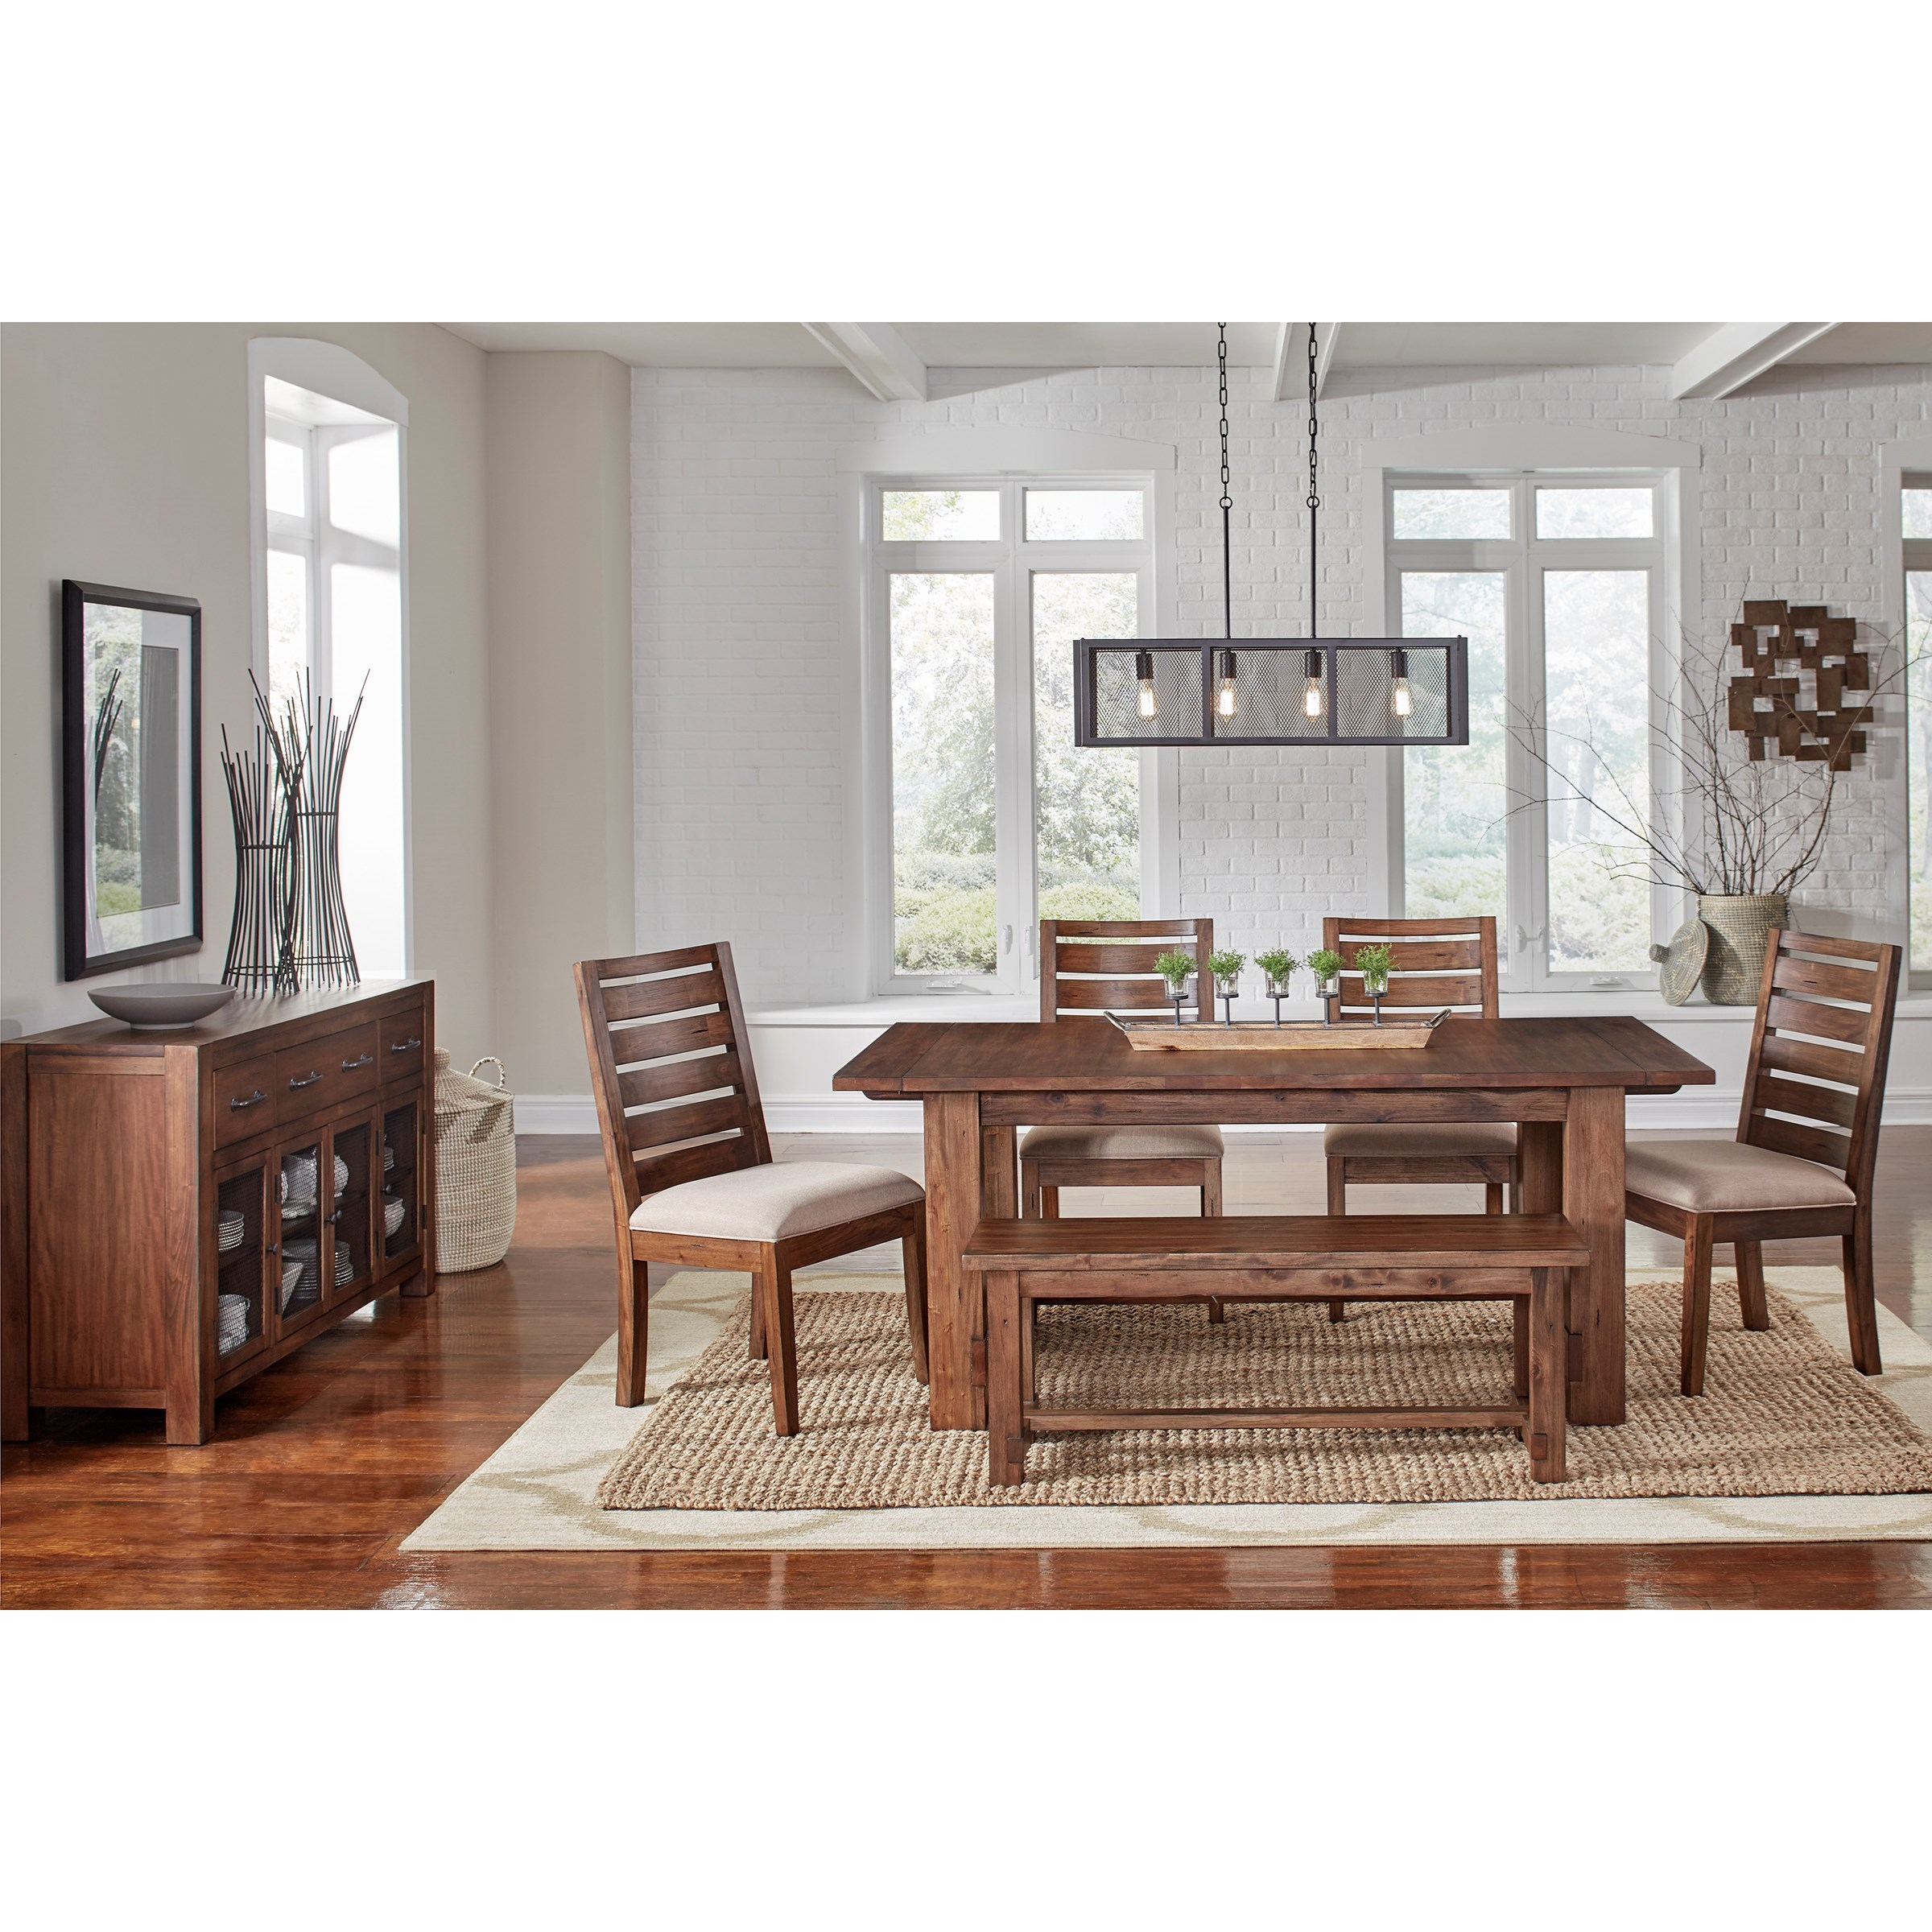 AAmerica Anacortes Dining Room Group - Item Number: ANA Dining Room Group 3